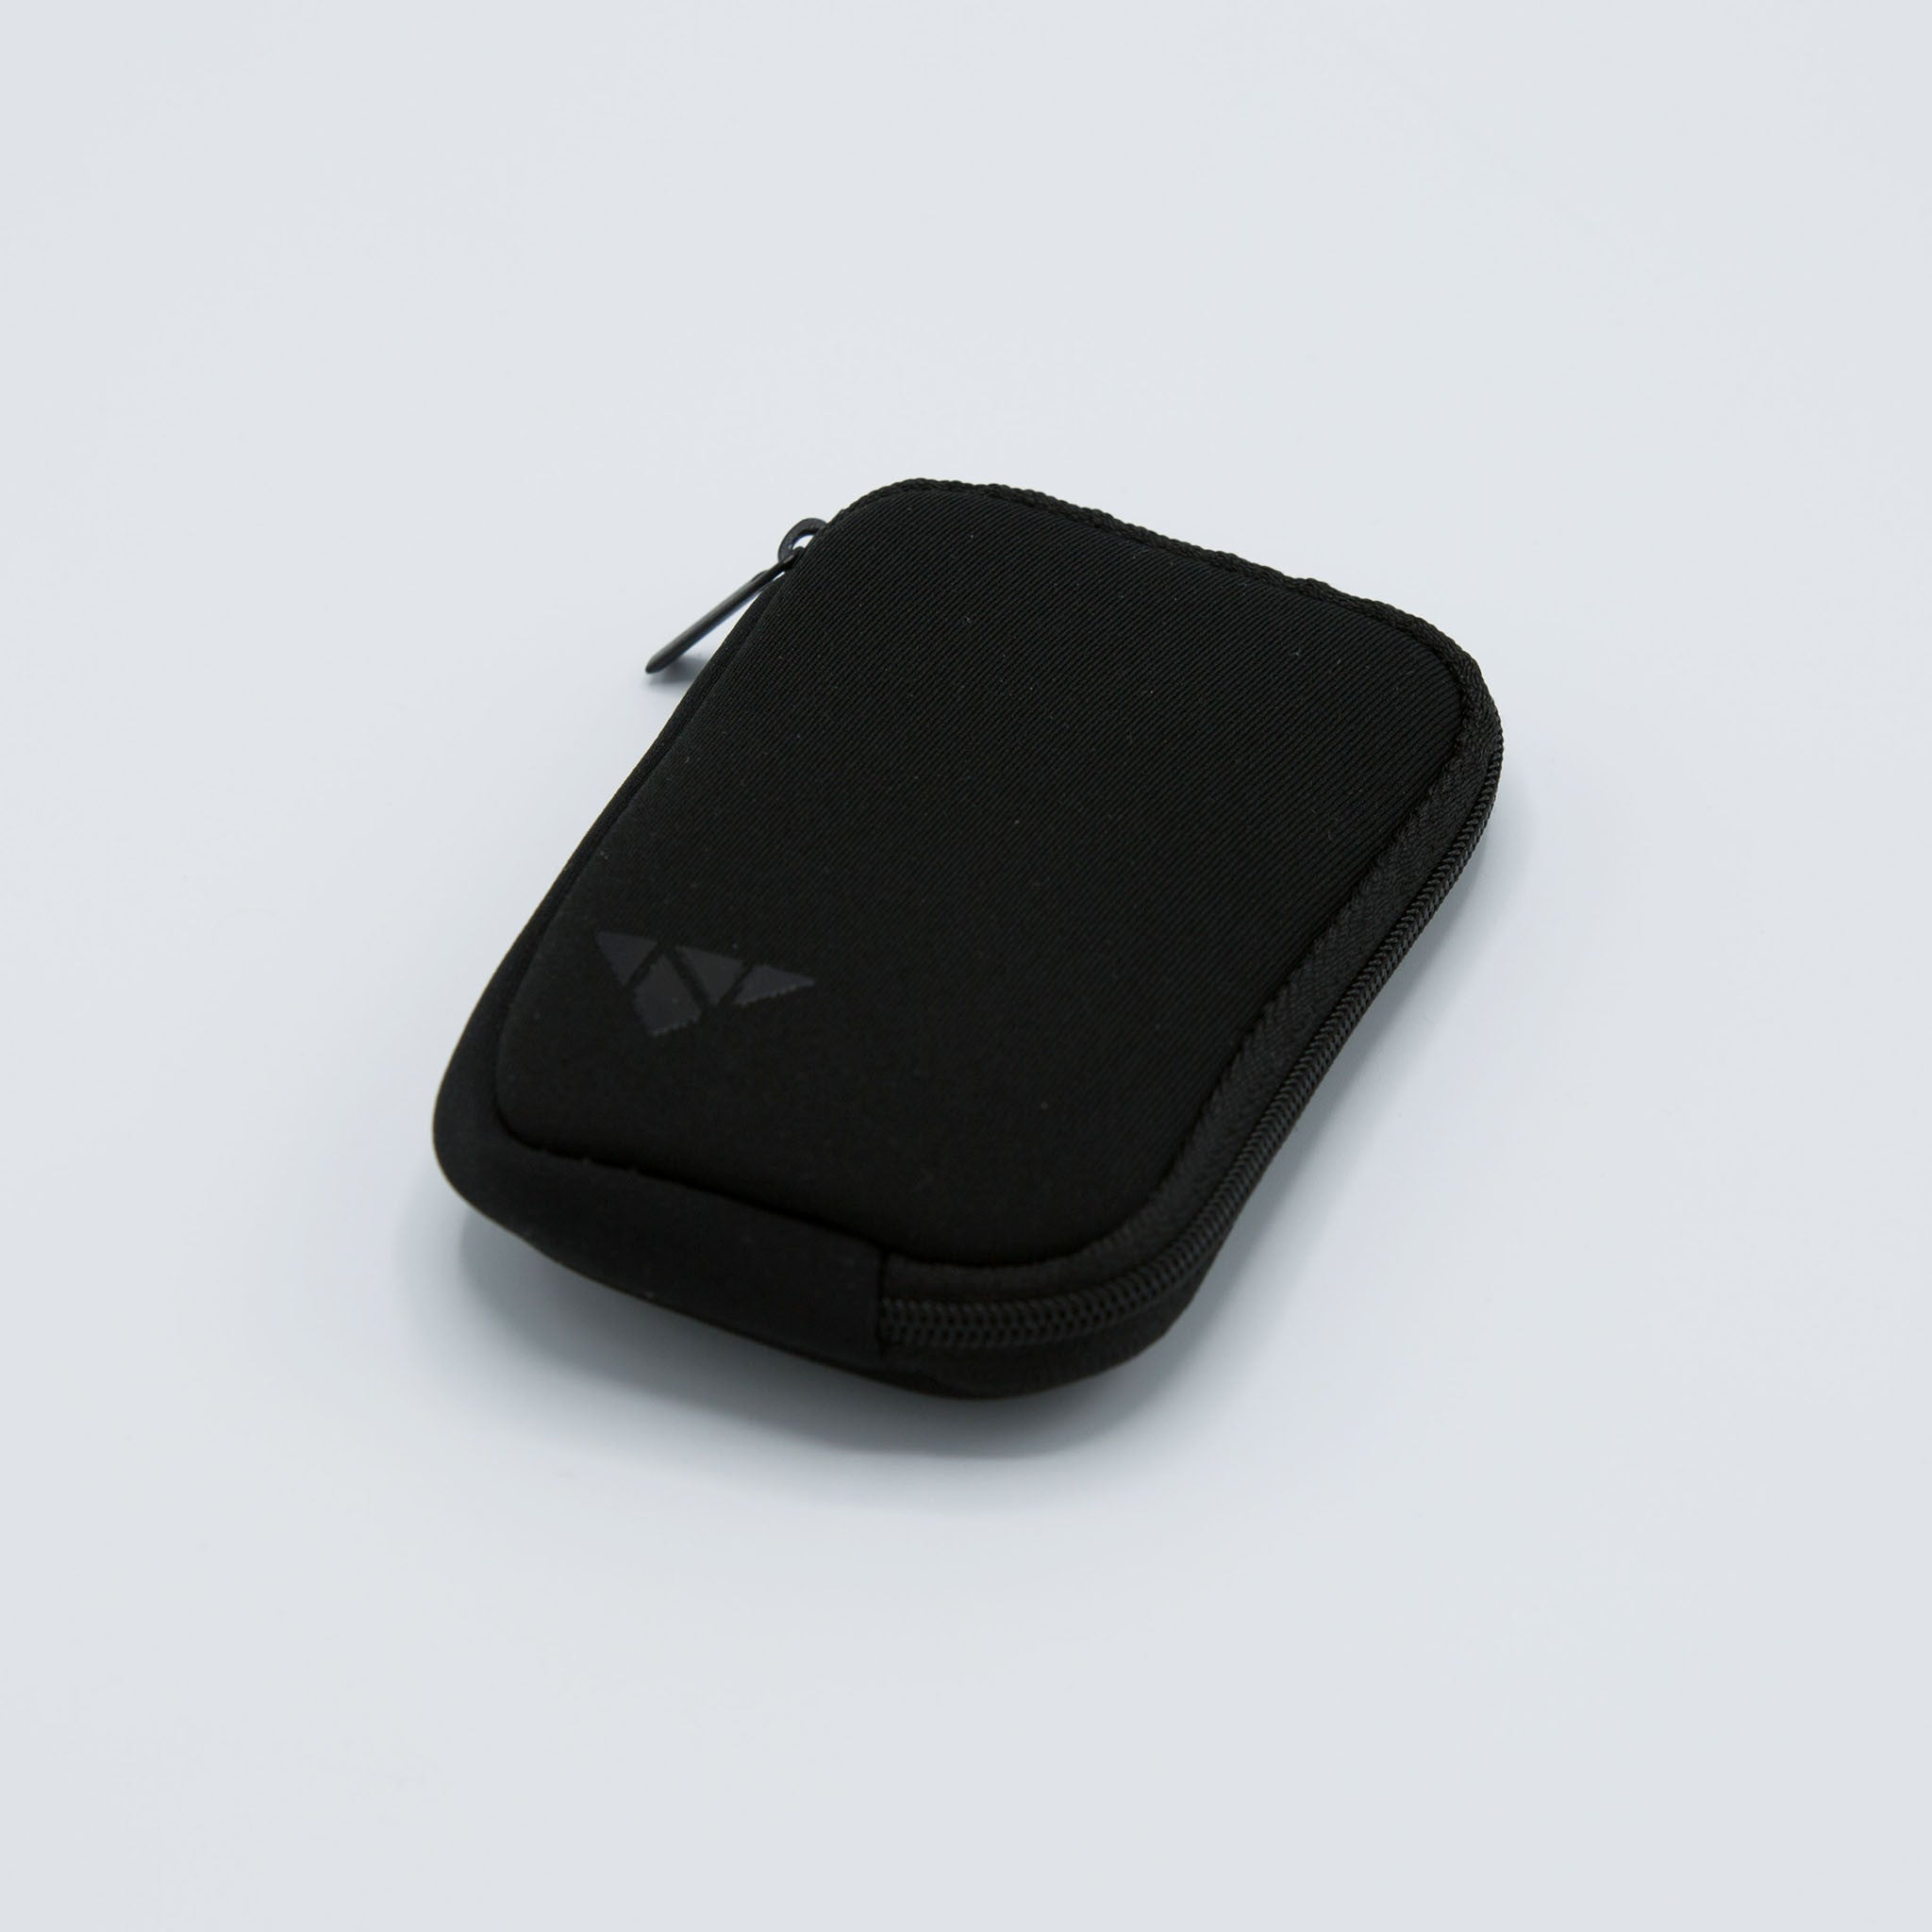 Black Neoprene Earbud Carrying Case